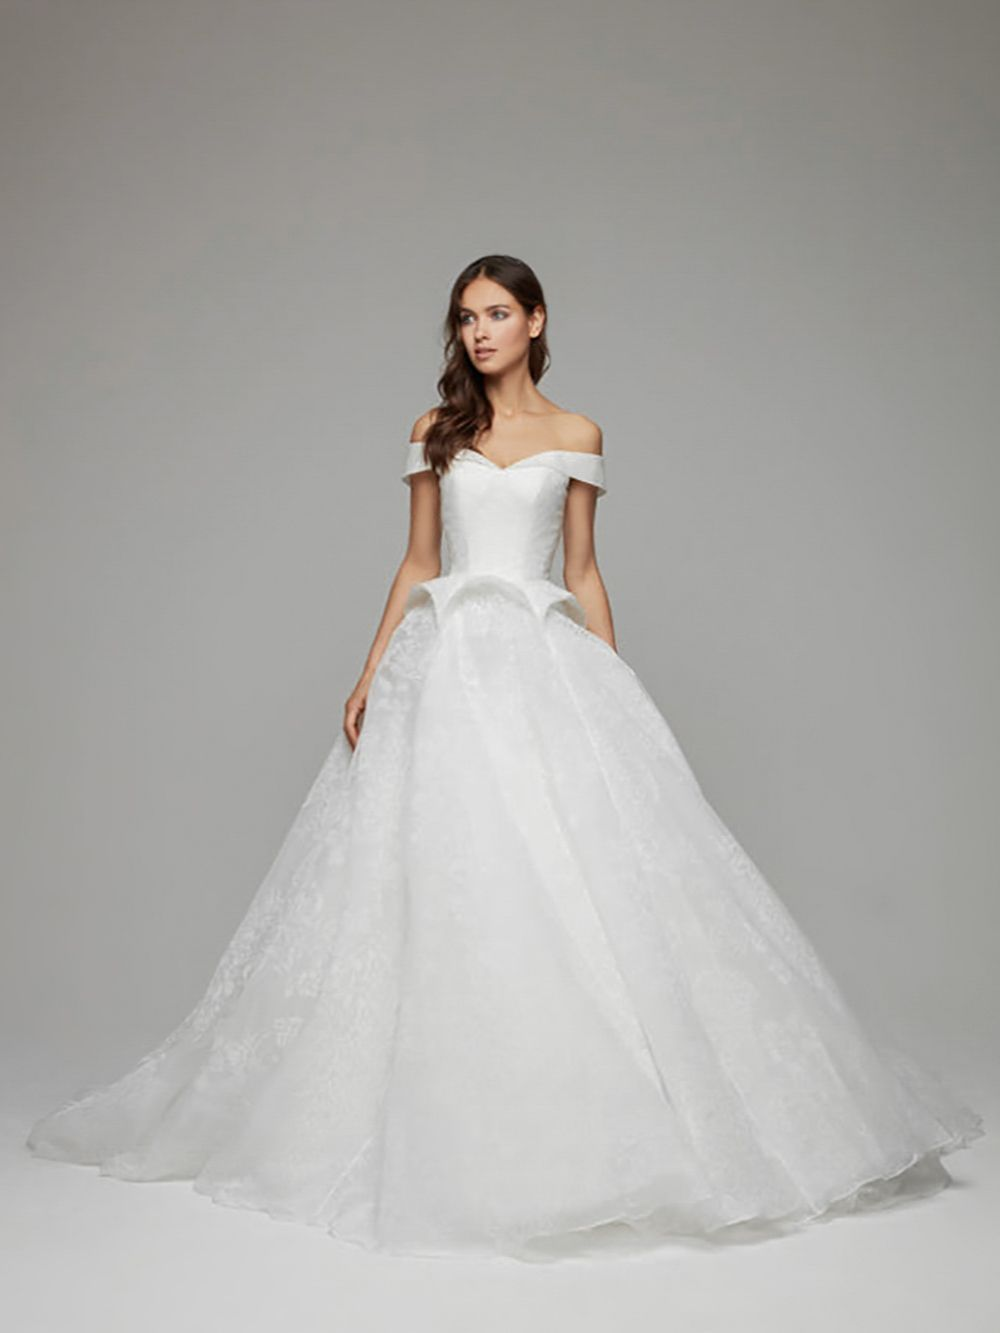 Nuvar Wedding Dress A Dress To Be Remembered Nuvar Is For The Fashion Forward Bride Looking To Wow Complete With Off The S Dresses Wedding Dresses Ball Gowns